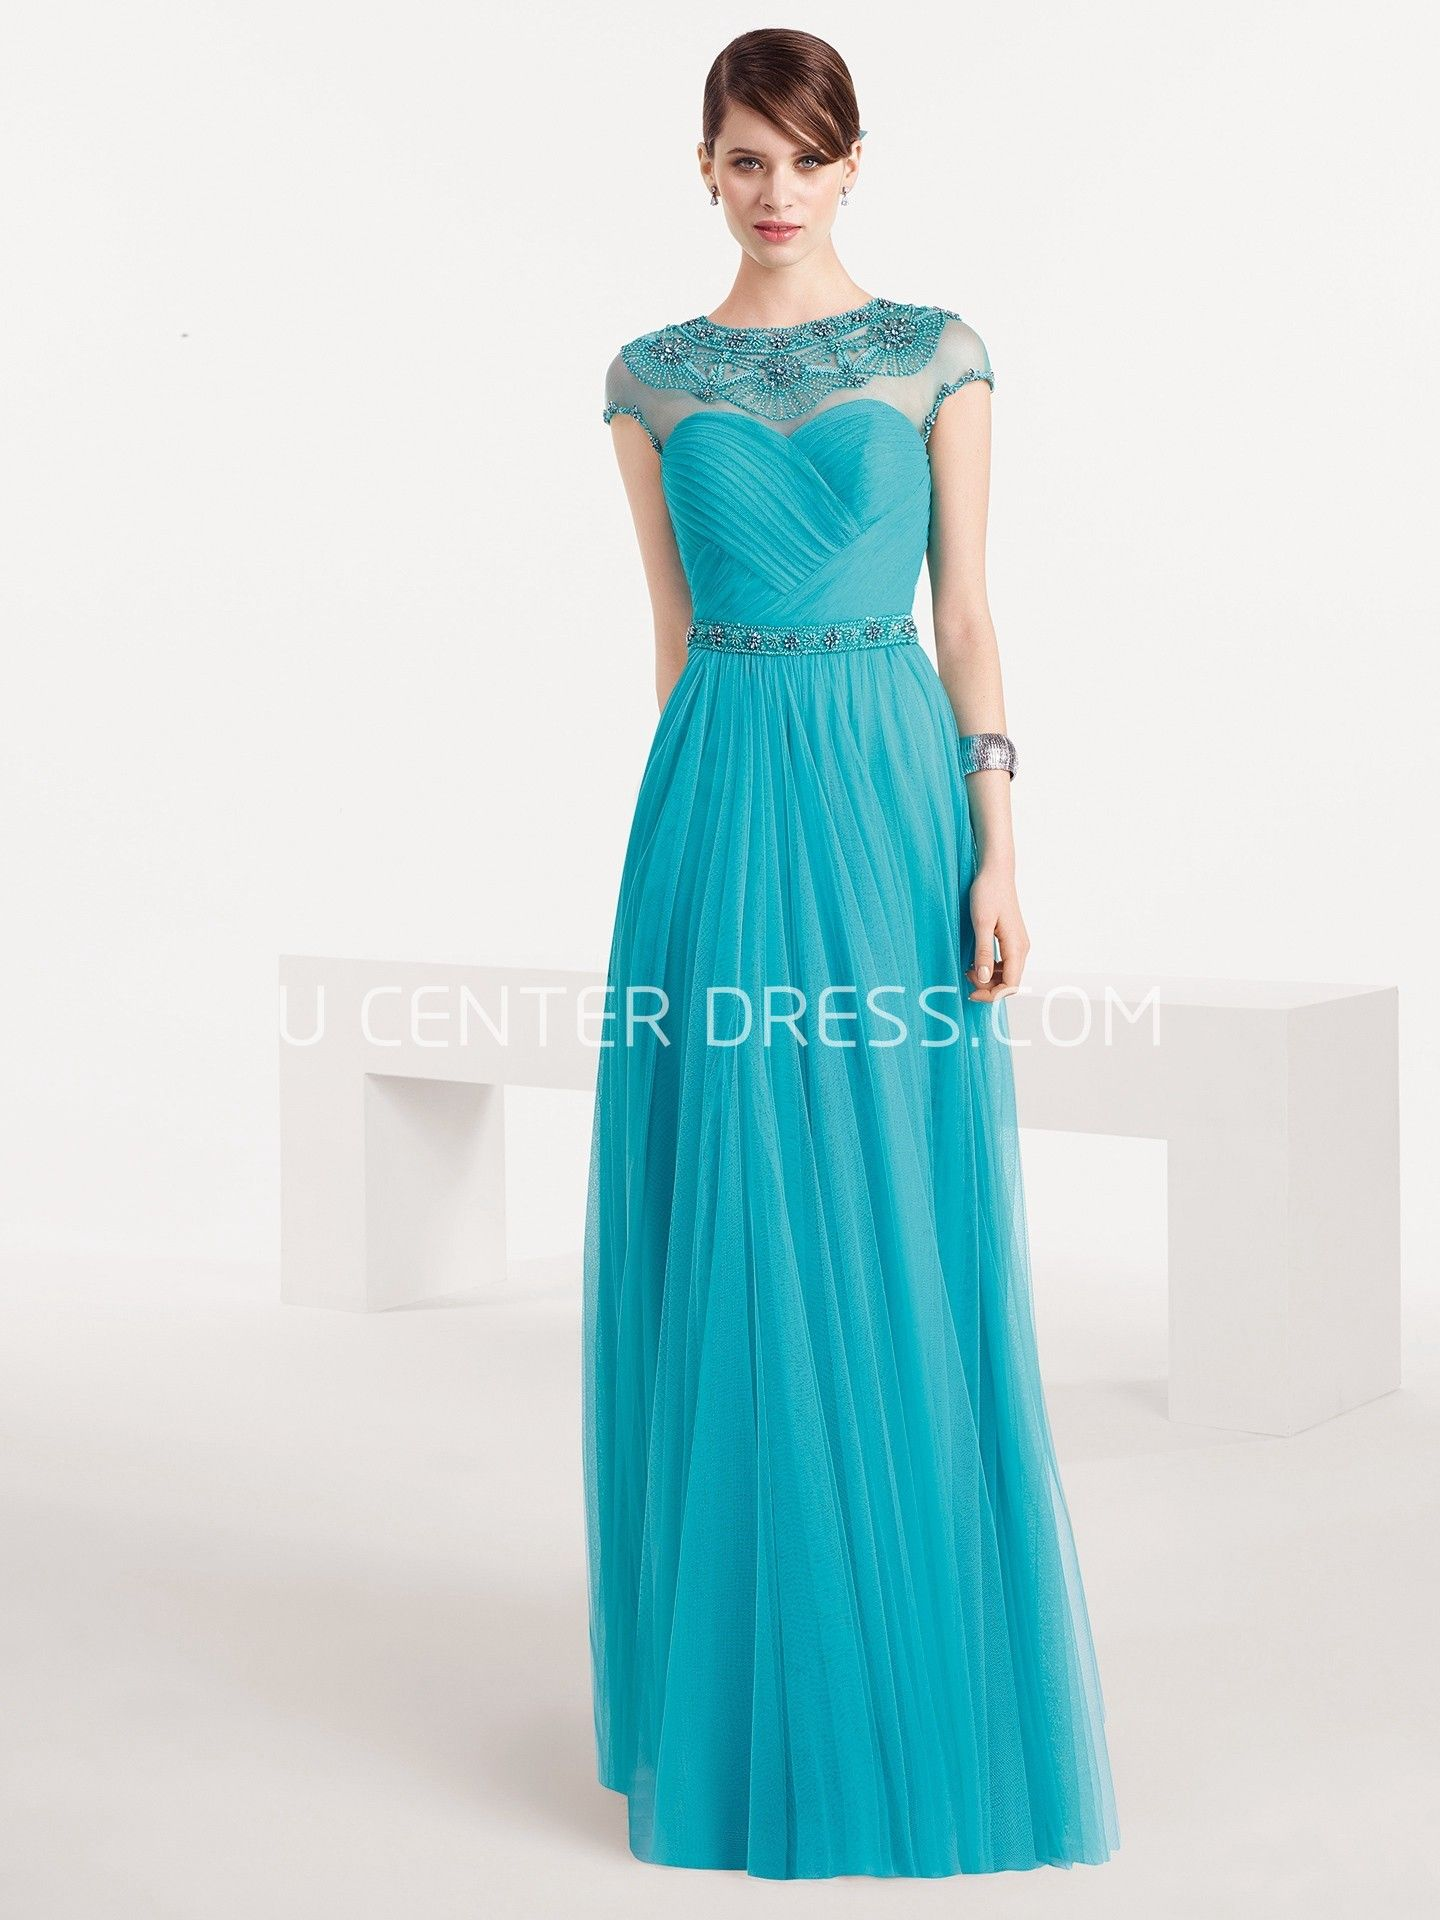 A-Line Cap-Sleeve Criss-Cross Scoop-Neck Floor-Length Tulle Prom ...